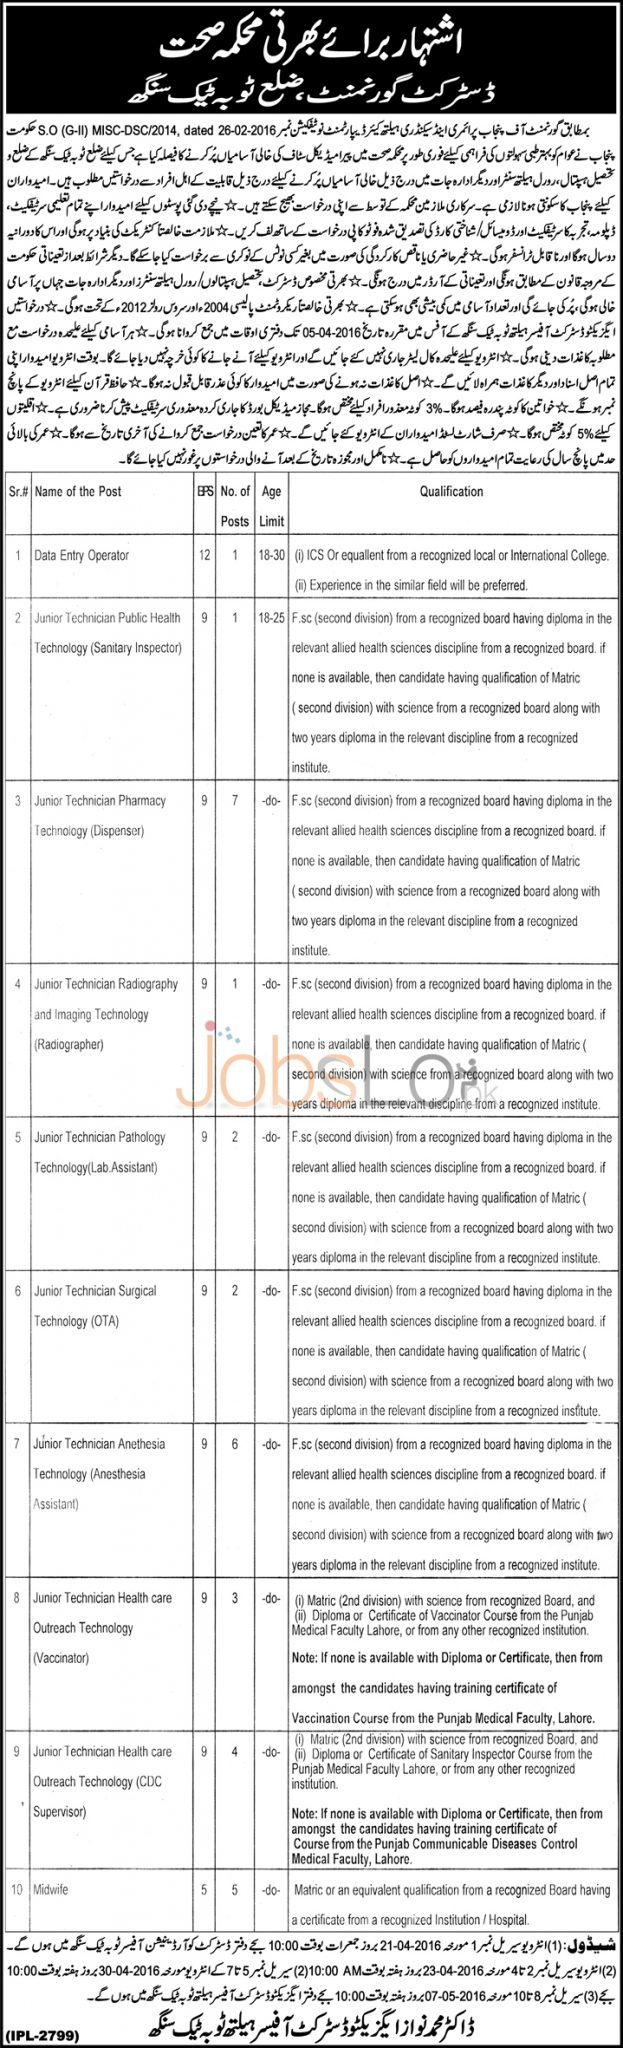 SItuations Vacant in Health Department in Toba Tek Singh 14 March 2016 Eligibility Criteria